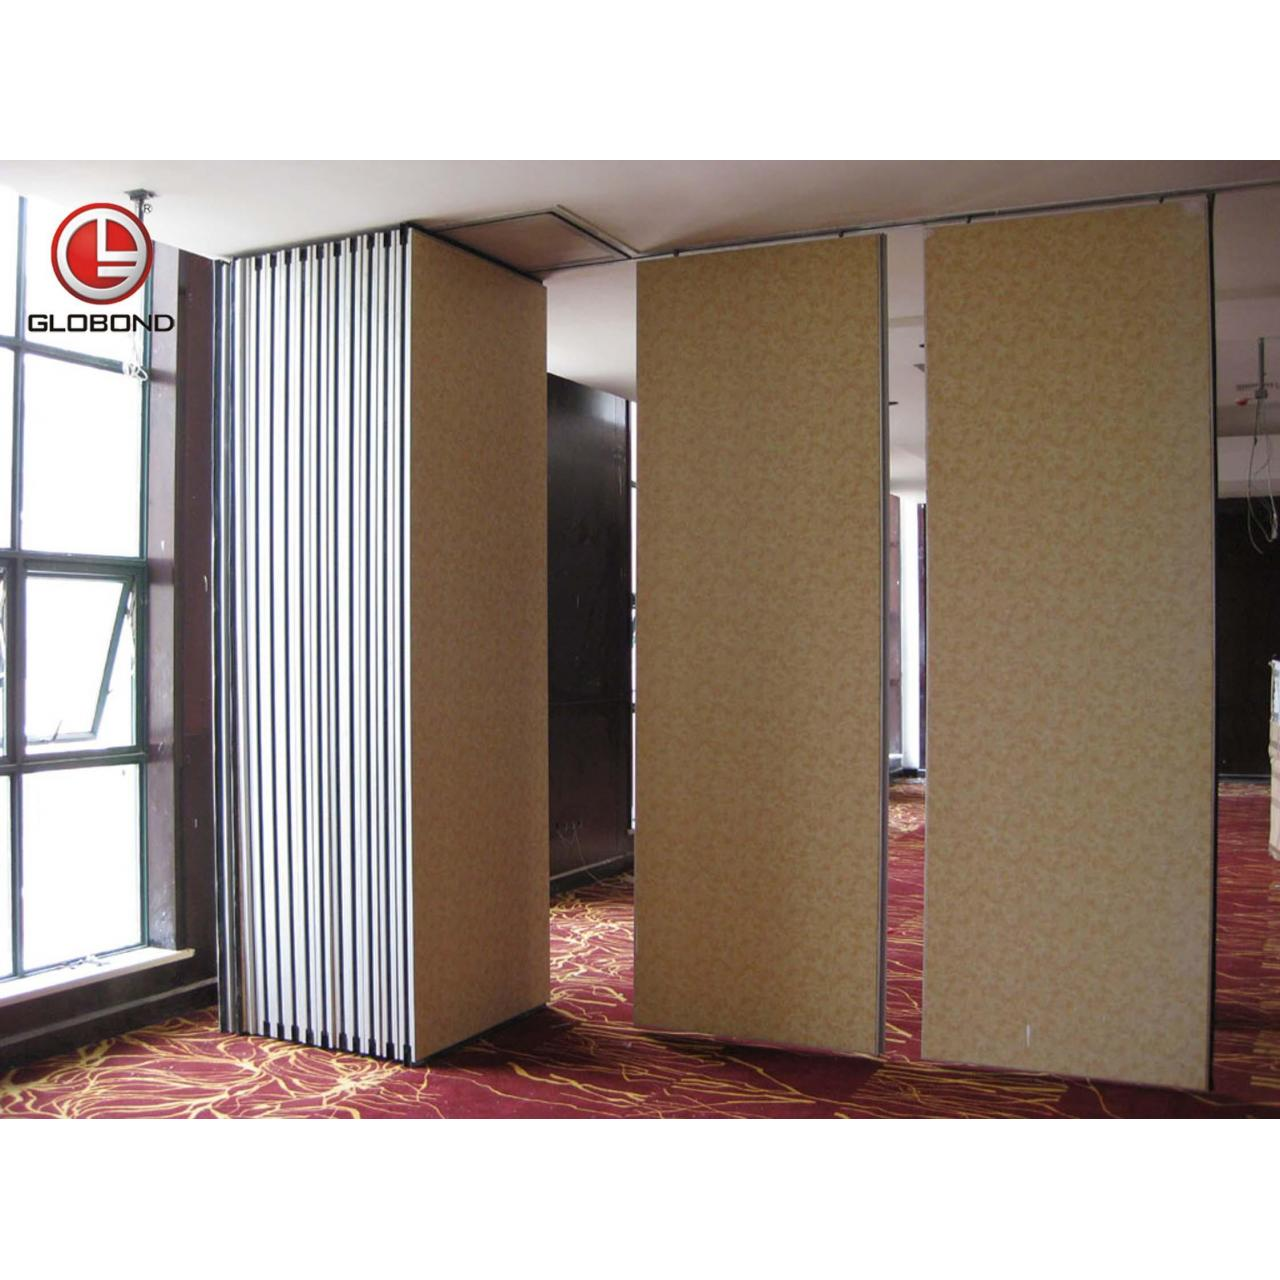 Quality AEP- wall partition GLOBOND AEP-Aluminum Energy-saving Panels. for sale